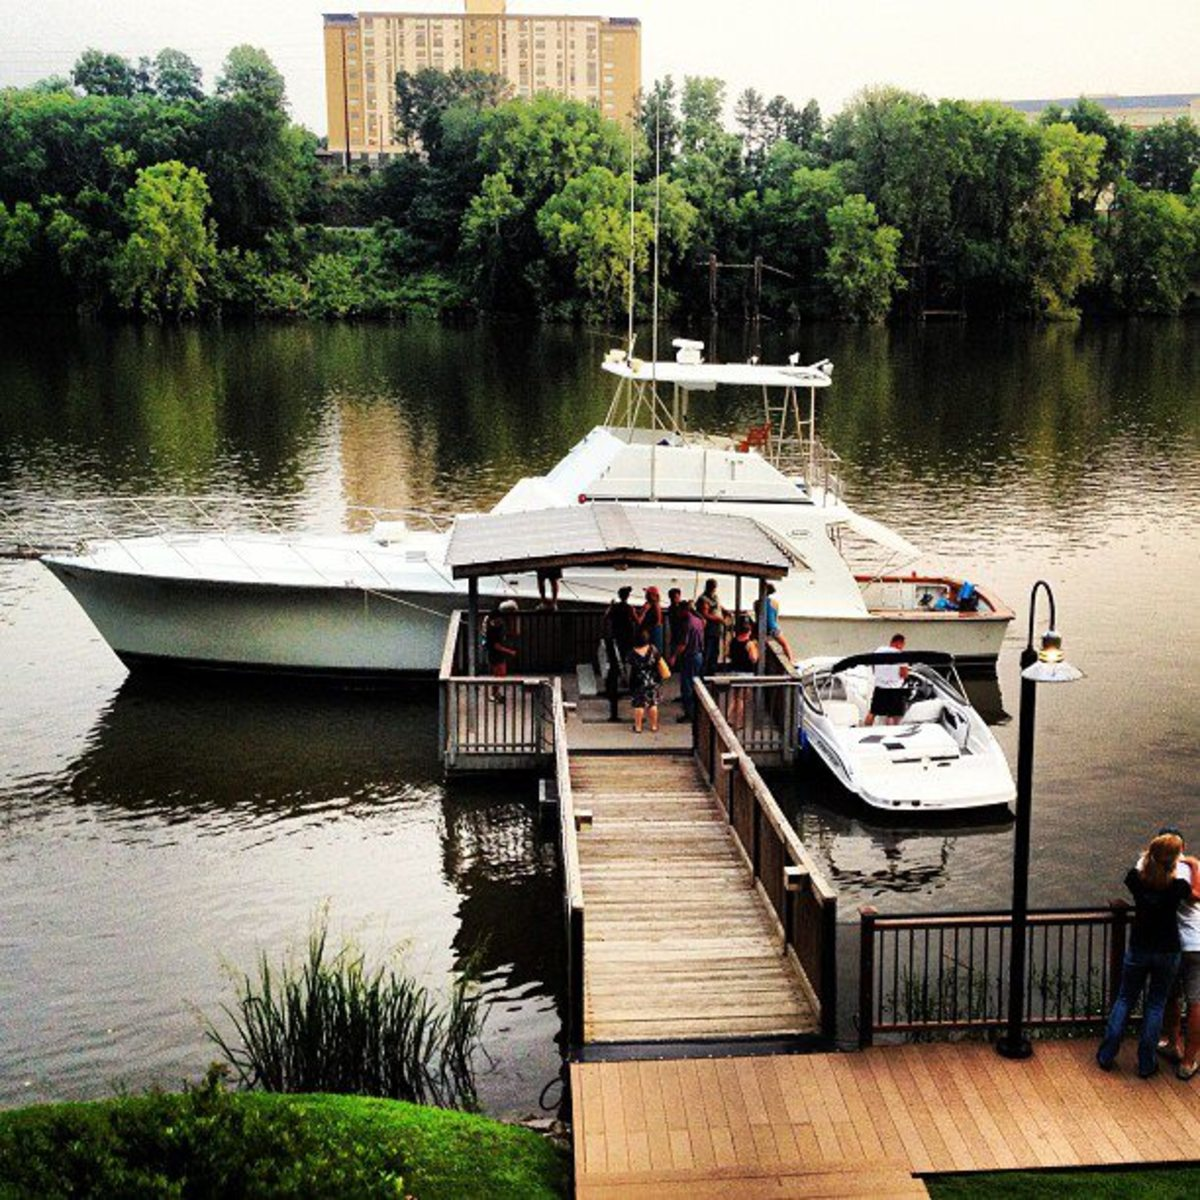 They even have a dock if you're on your boat and feel like stopping in.